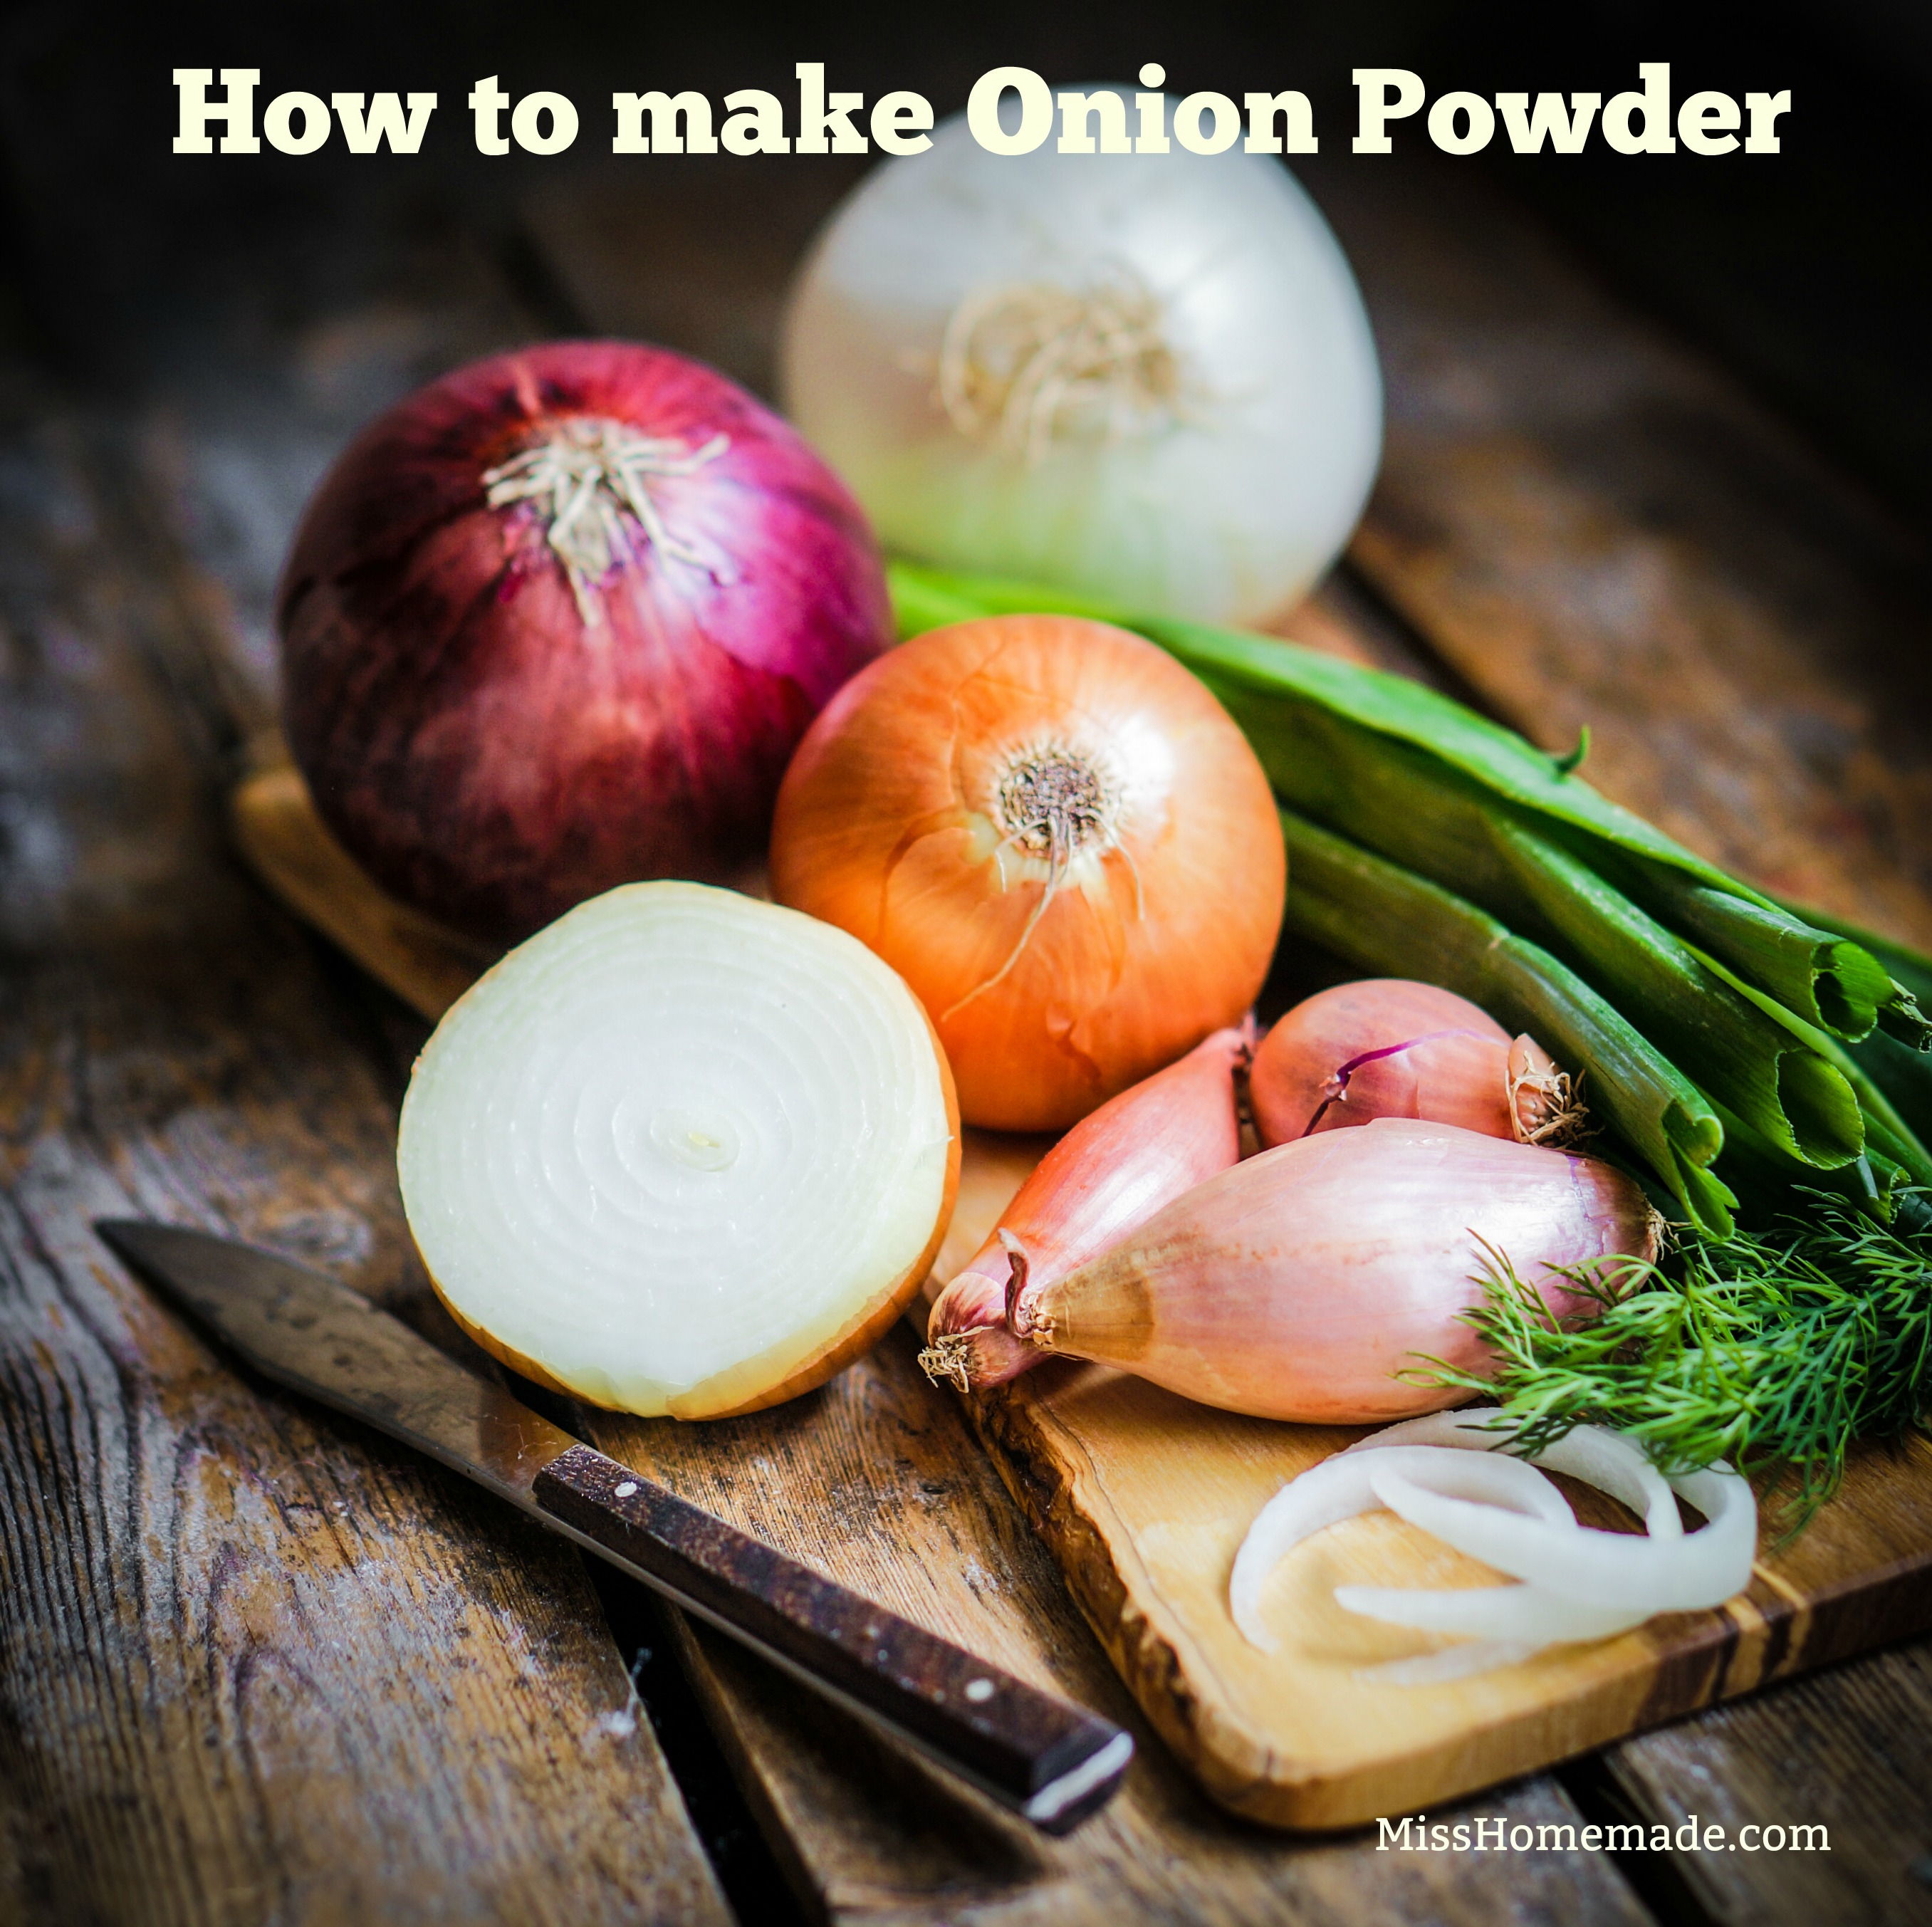 How to make Onion Powder from Scratch